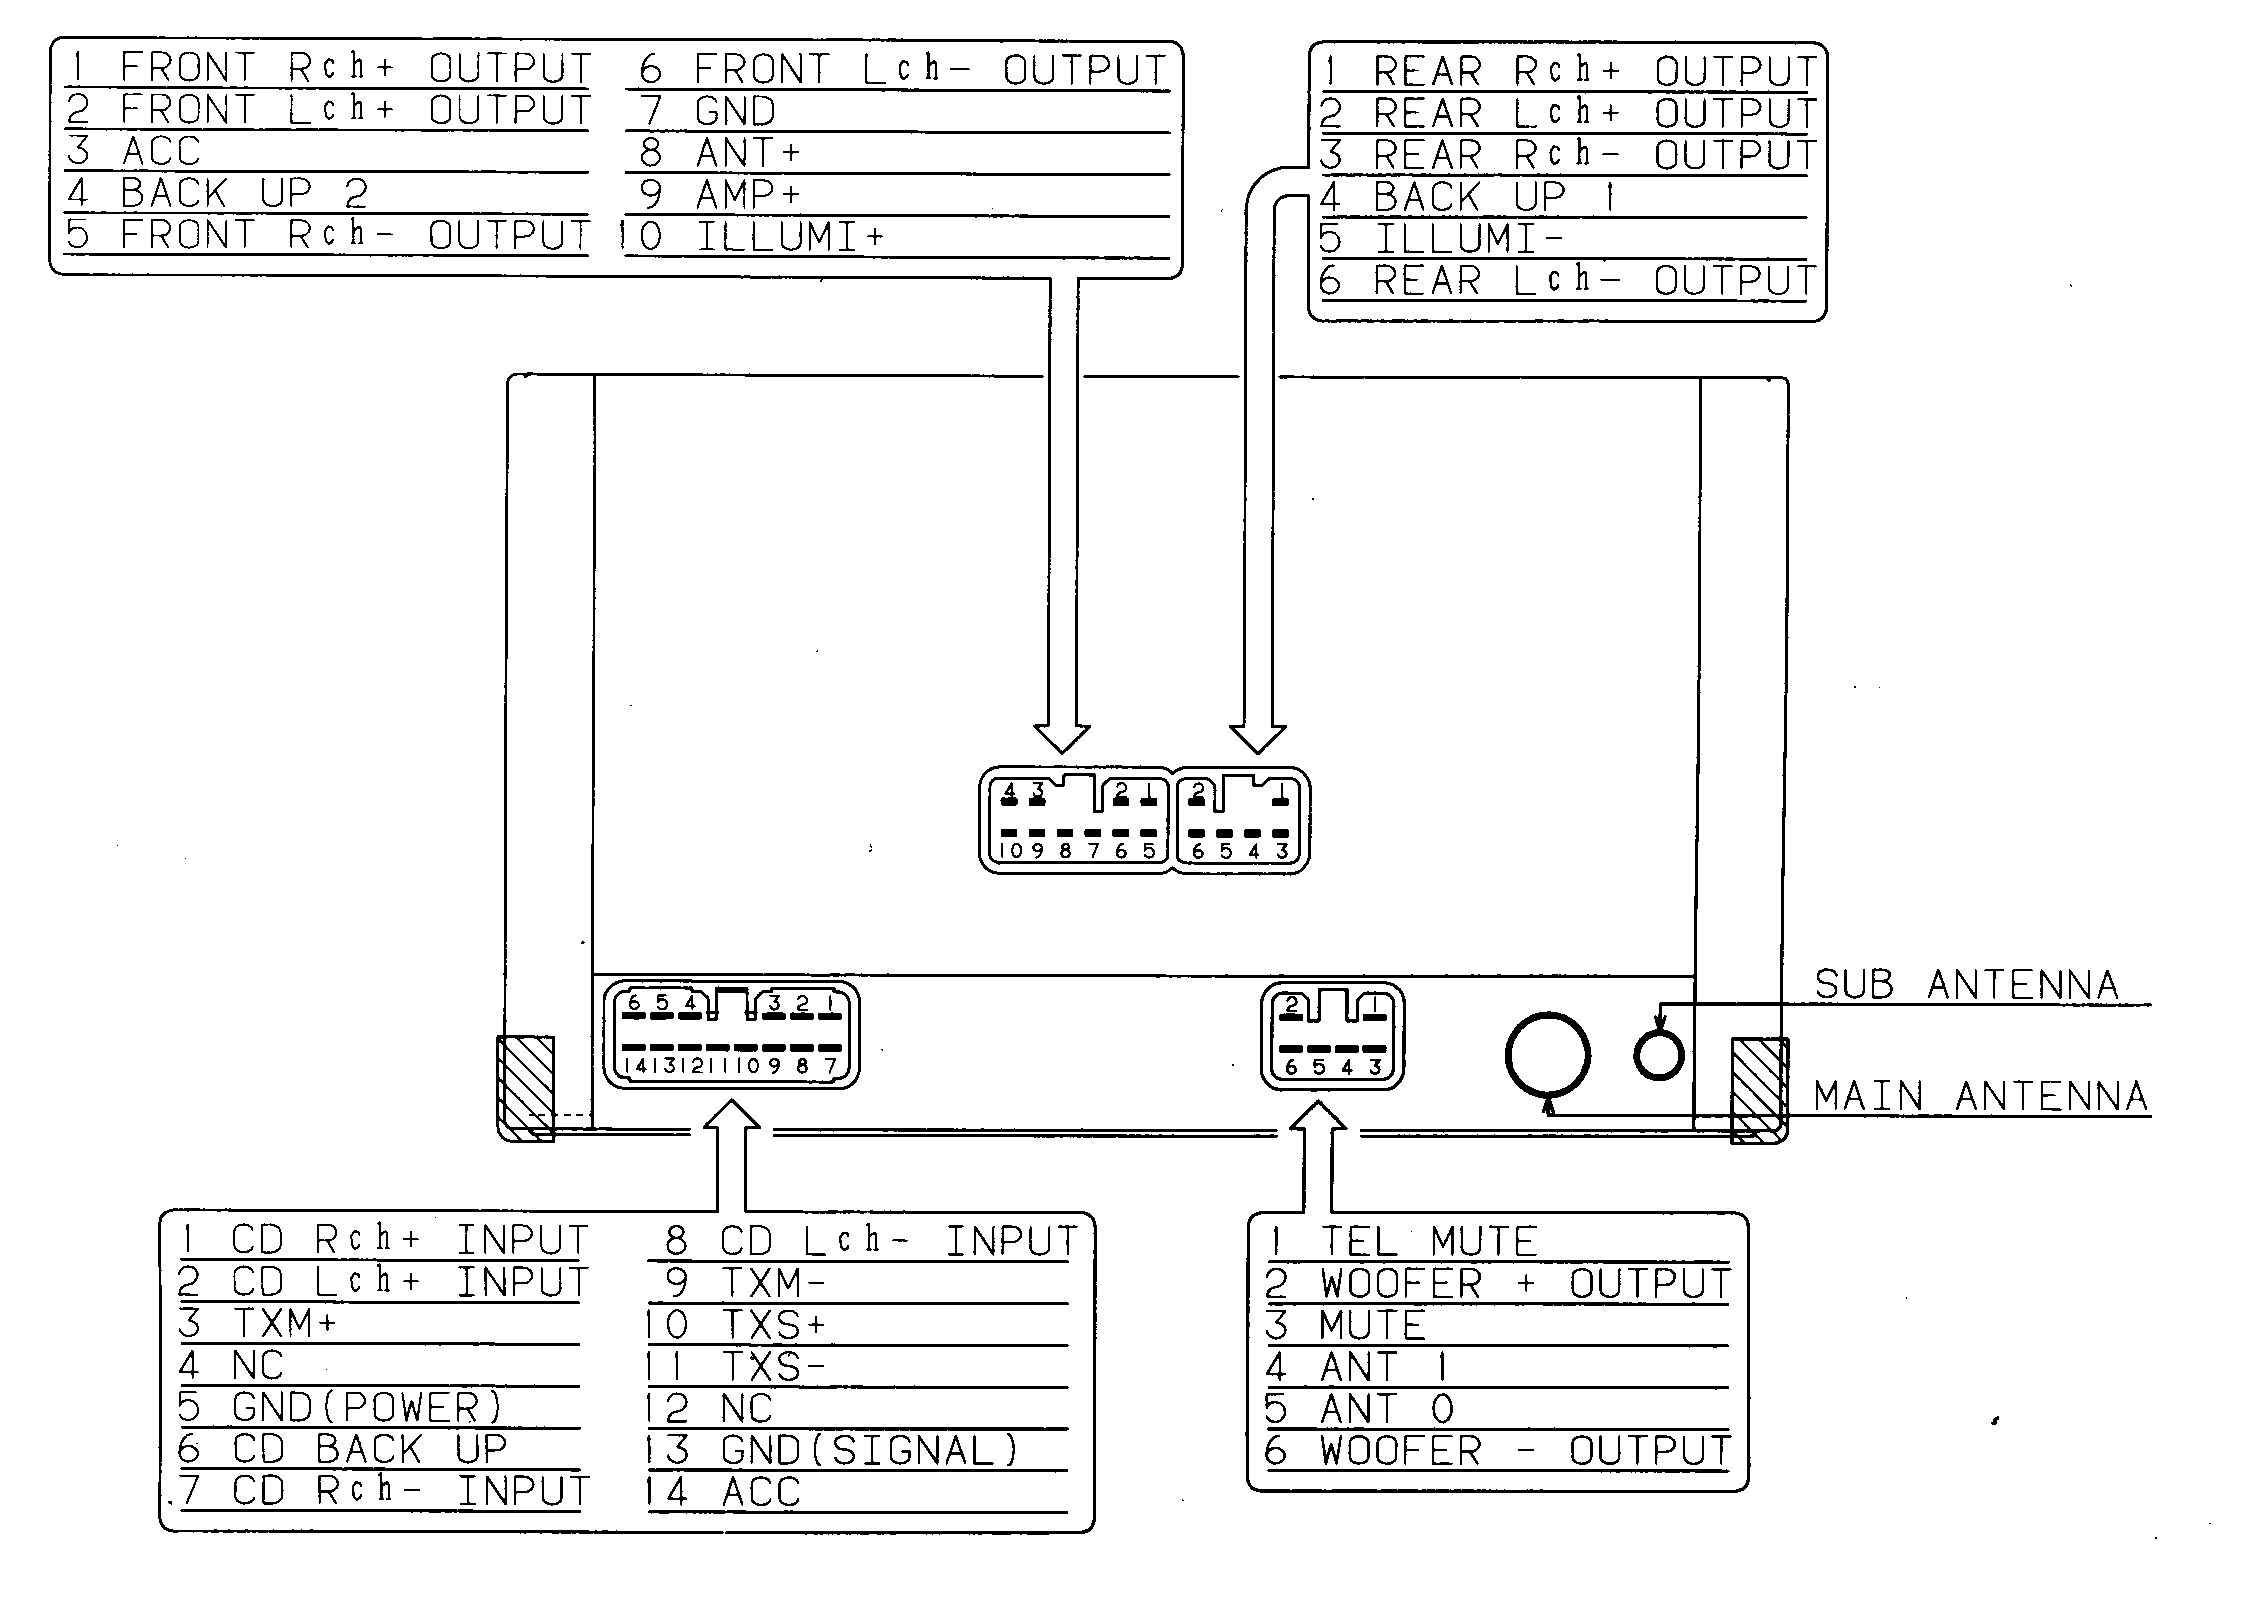 [GJFJ_338]  Car Audio Wire Diagram Codes Lexus - Factory Car Stereo Repair - Bose Stereo,  Speaker / Amplifier Repair | Gm Bose Audio Wiring Diagram |  | Car Radio Repair, We Know Bose Stereo Repair